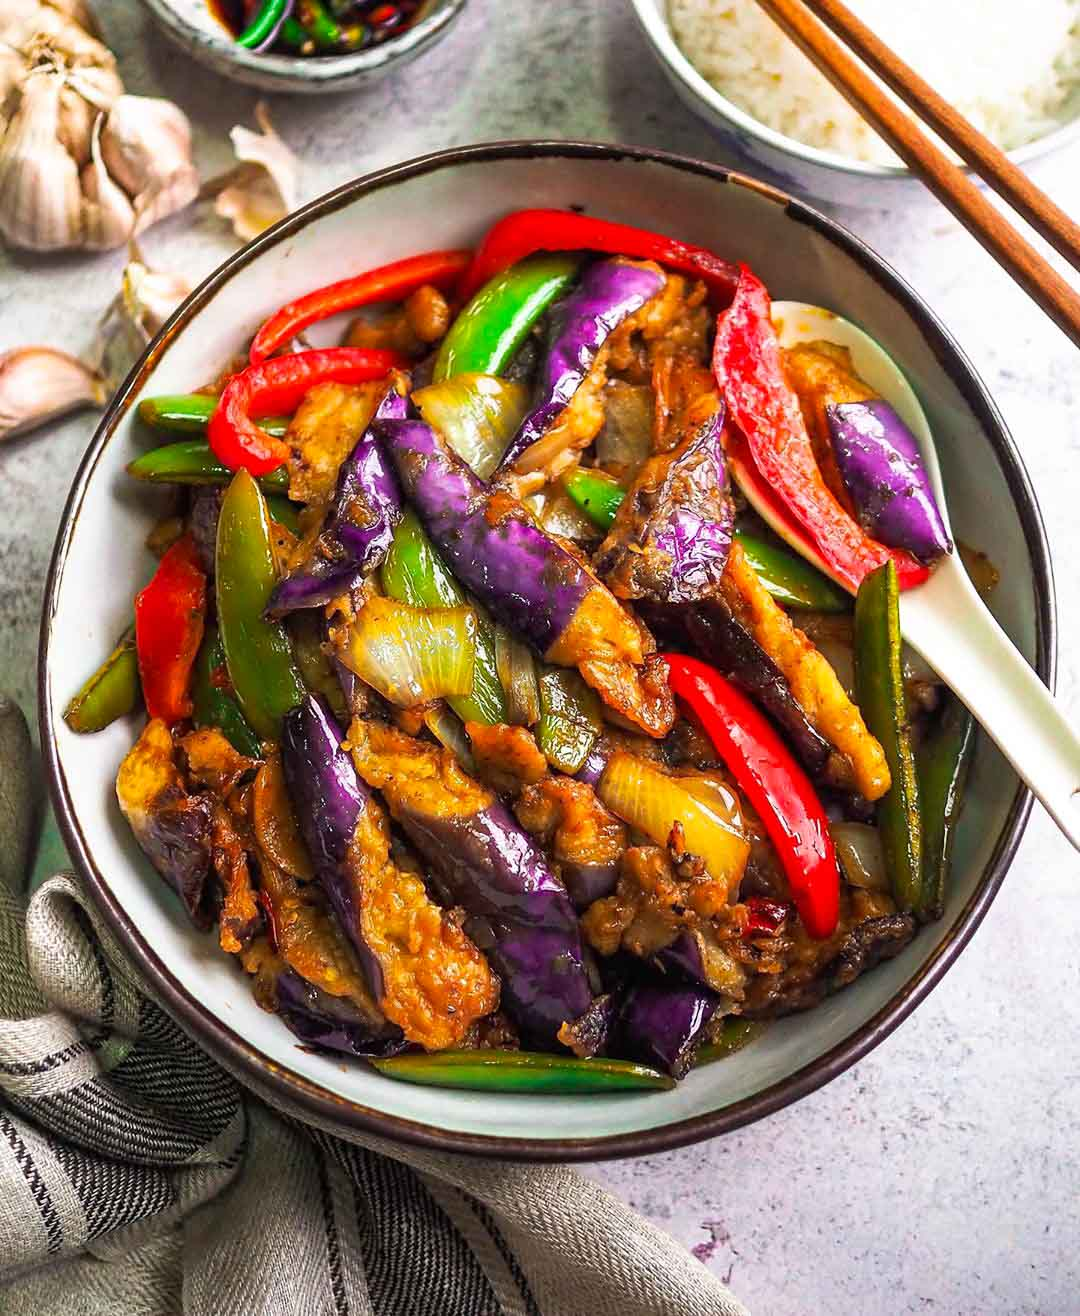 Easy Eggplant Stir Fry recipe served in a bowl with spoon.